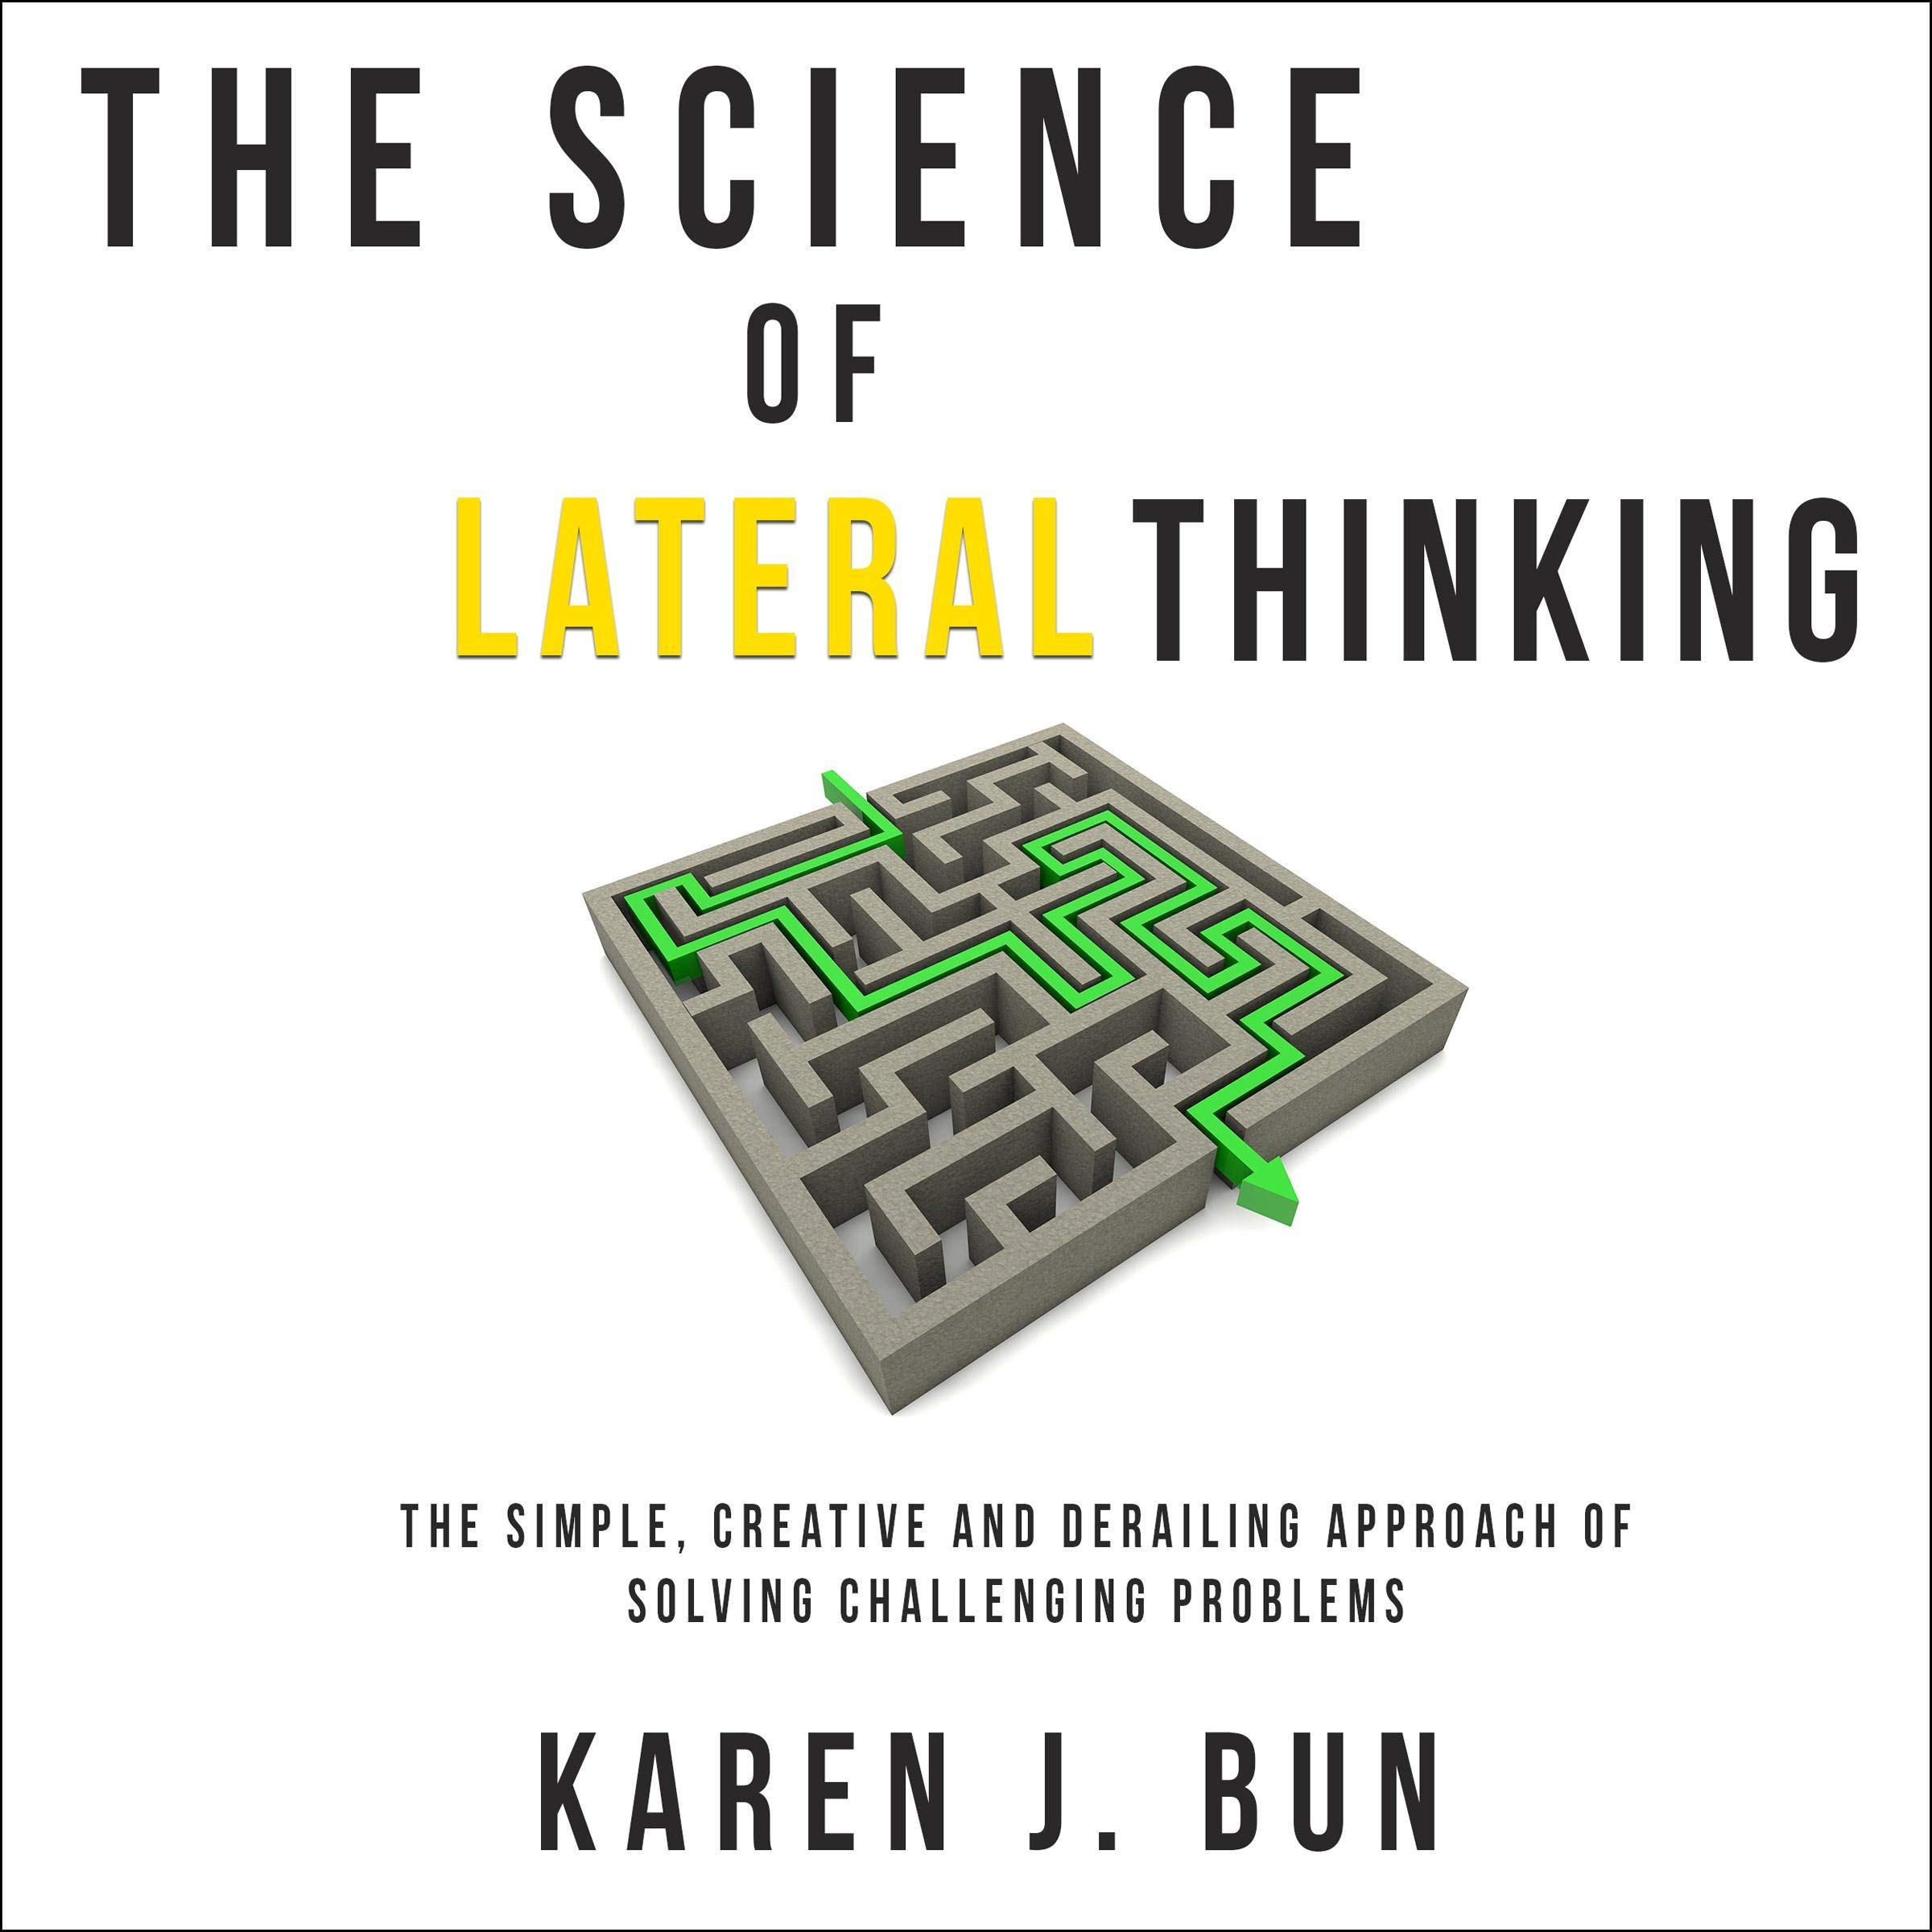 Image OfThe Science Of Lateral Thinking: The Simple, Creative And Derailing Approach Of Solving Challenging Problems